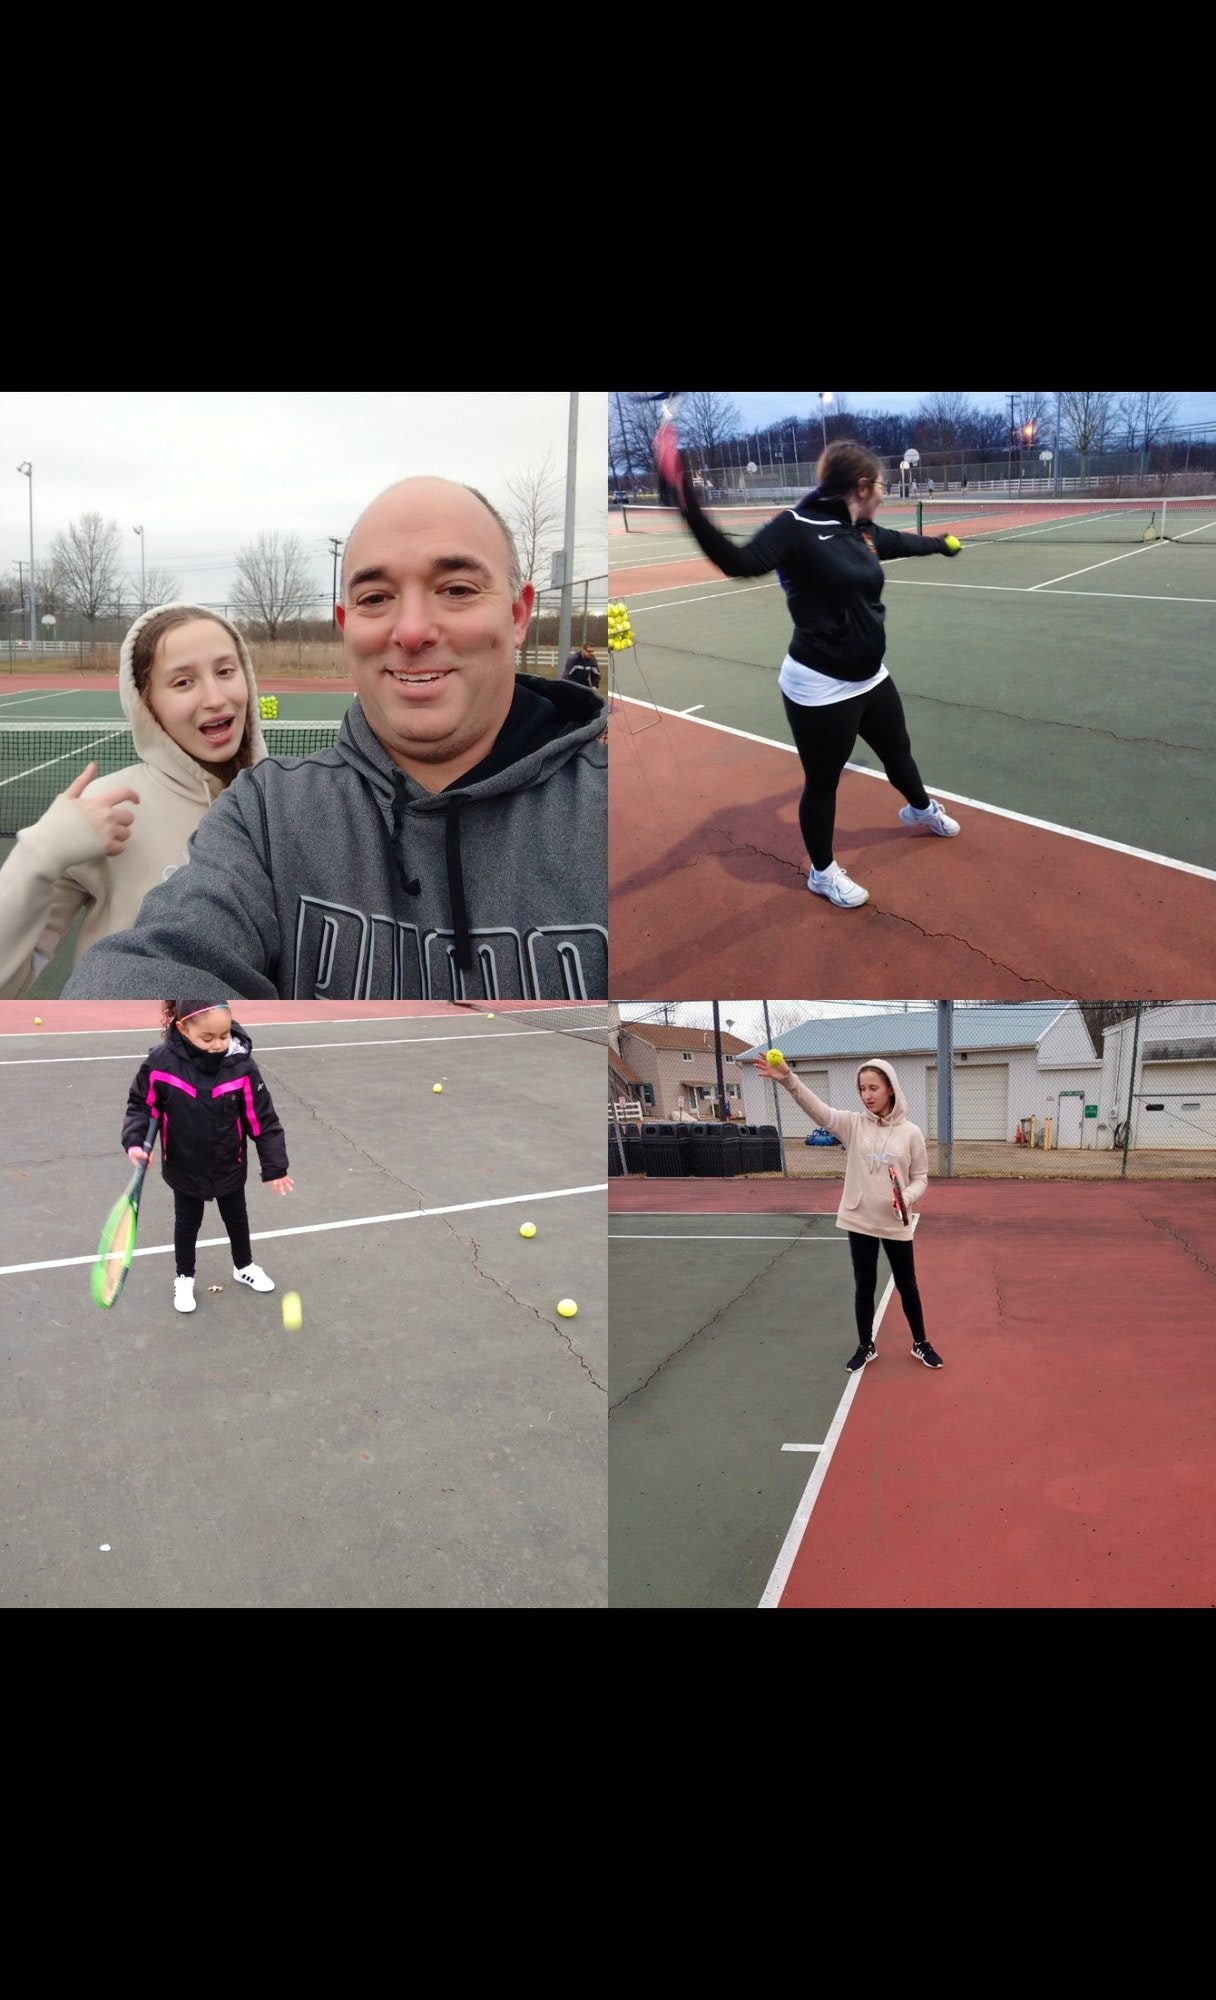 Jason F. teaches tennis lessons in Marlton, NJ